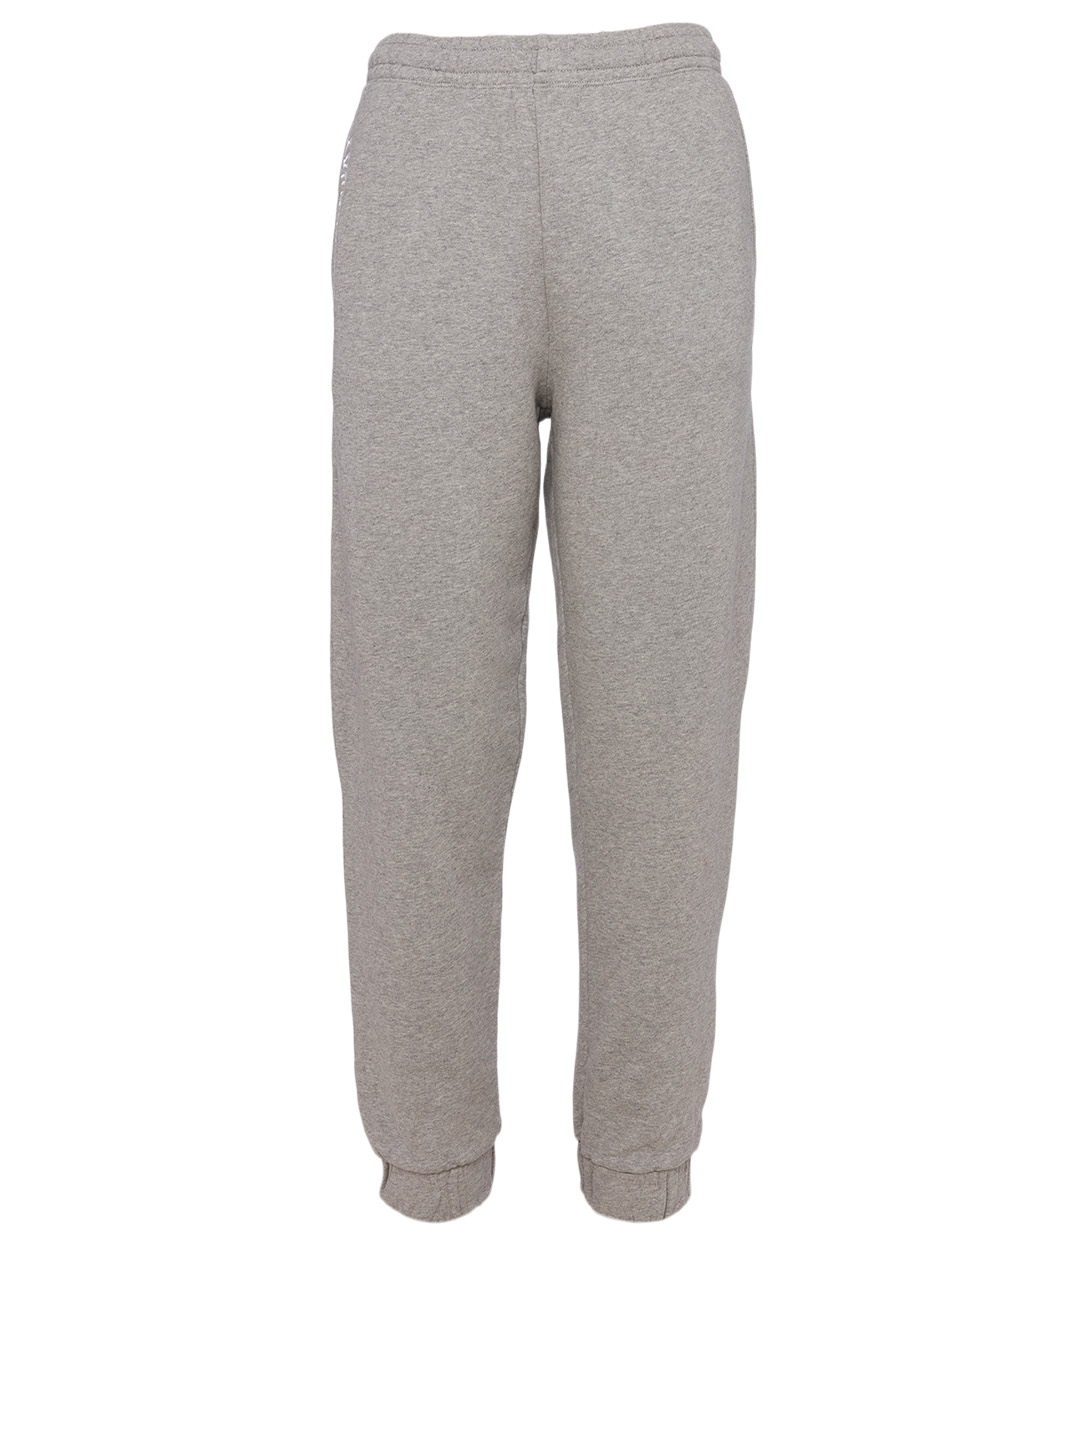 ROTATE BIRGER CHRISTENSEN Mimi Organic Cotton Sweatpants Women's Grey